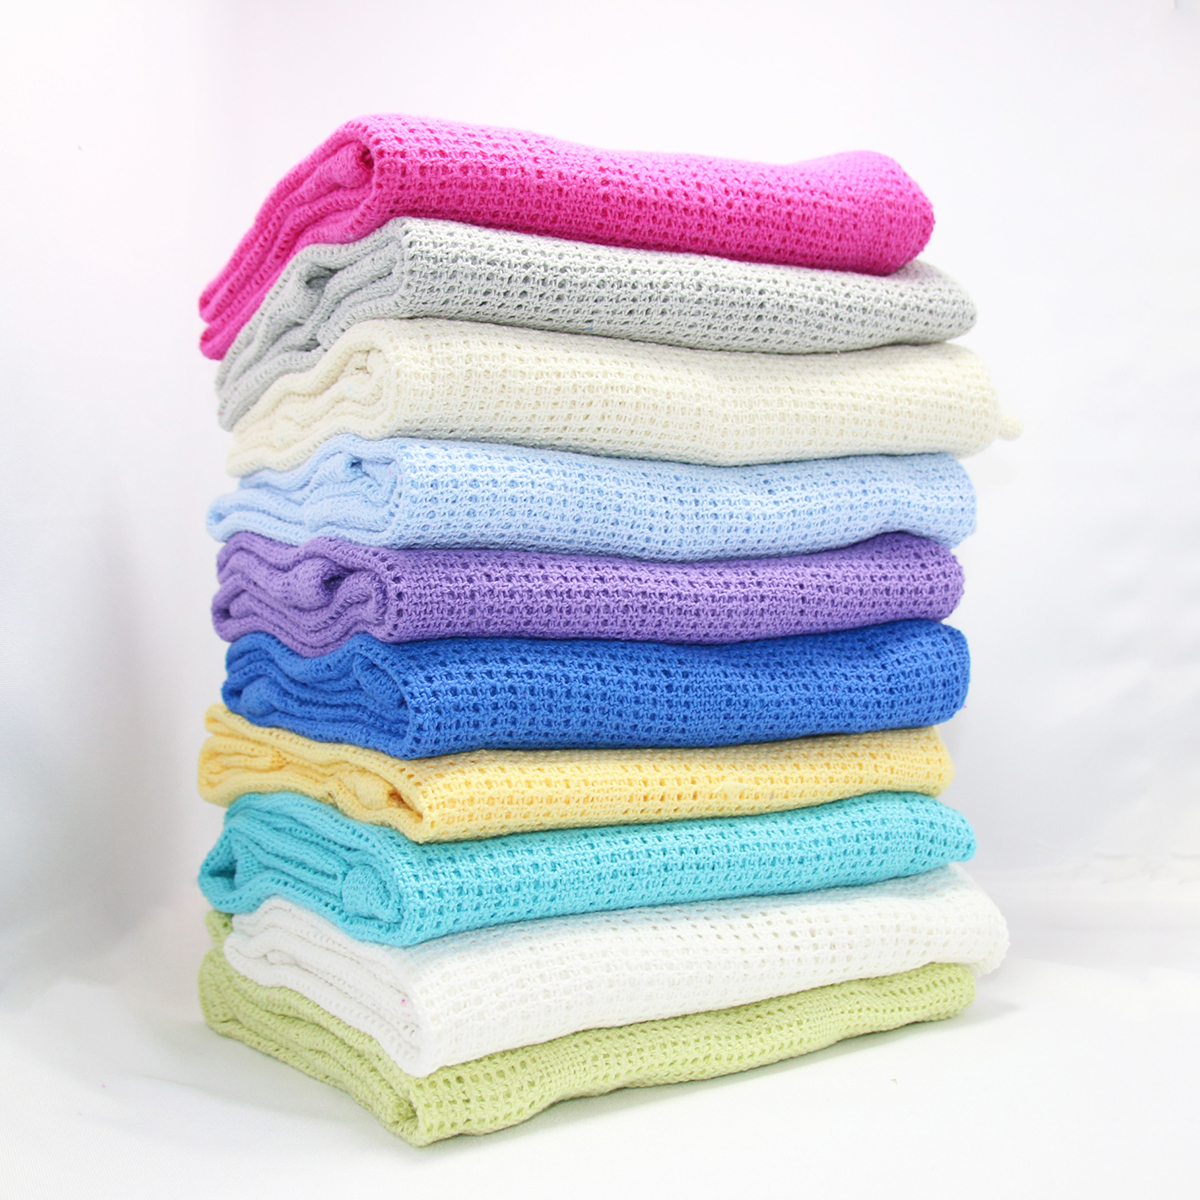 100% Cotton Candy Baby Blankets Infant Mesh Blanket Swaddling Wrap Feeding Towel Baby Air Conditioning Blanket Toy Mat 75*100cm